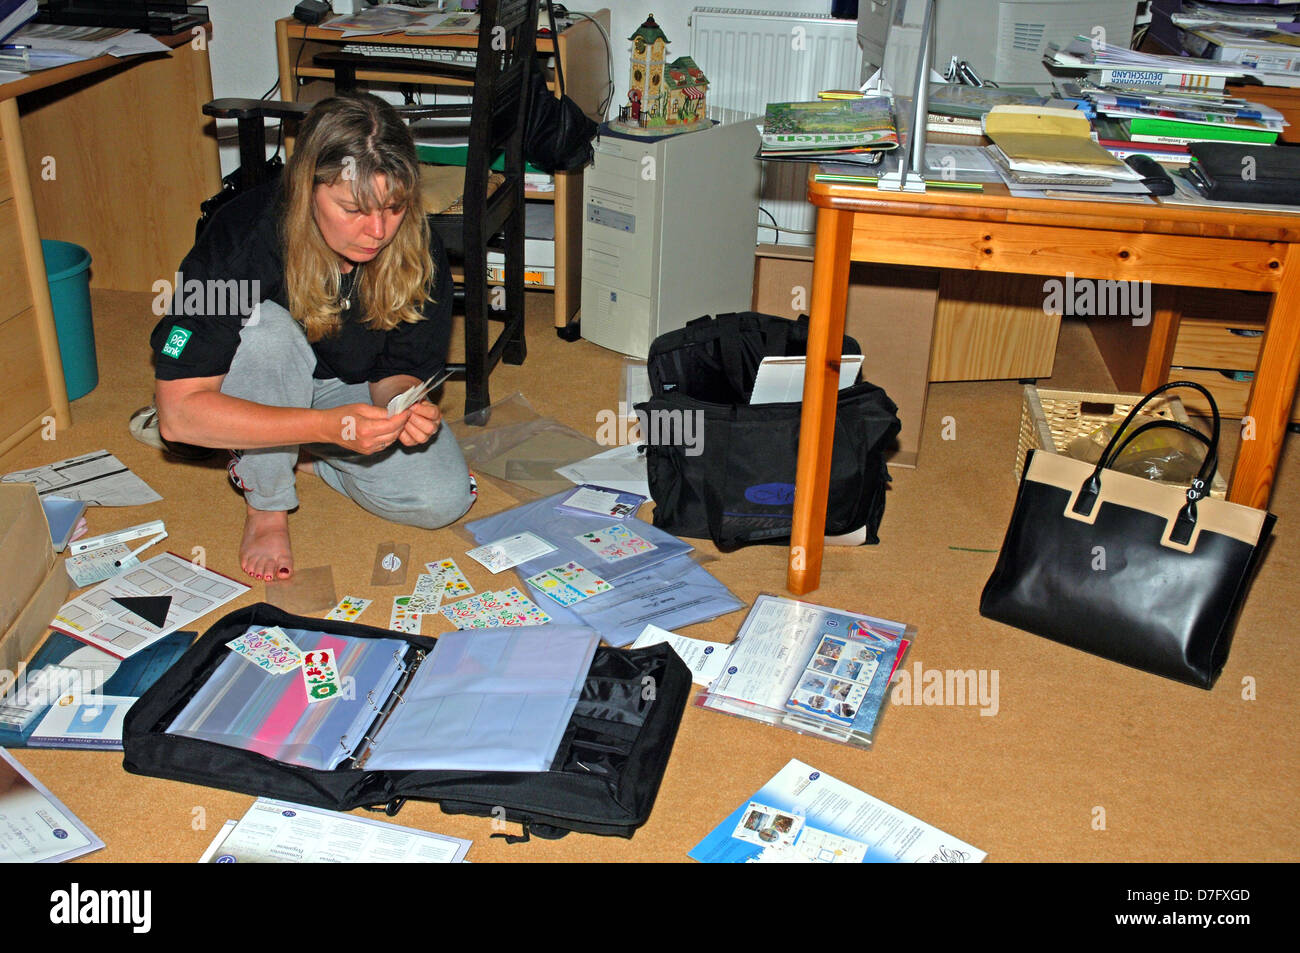 woman in Household, clear up, mess, disorder - Stock Image